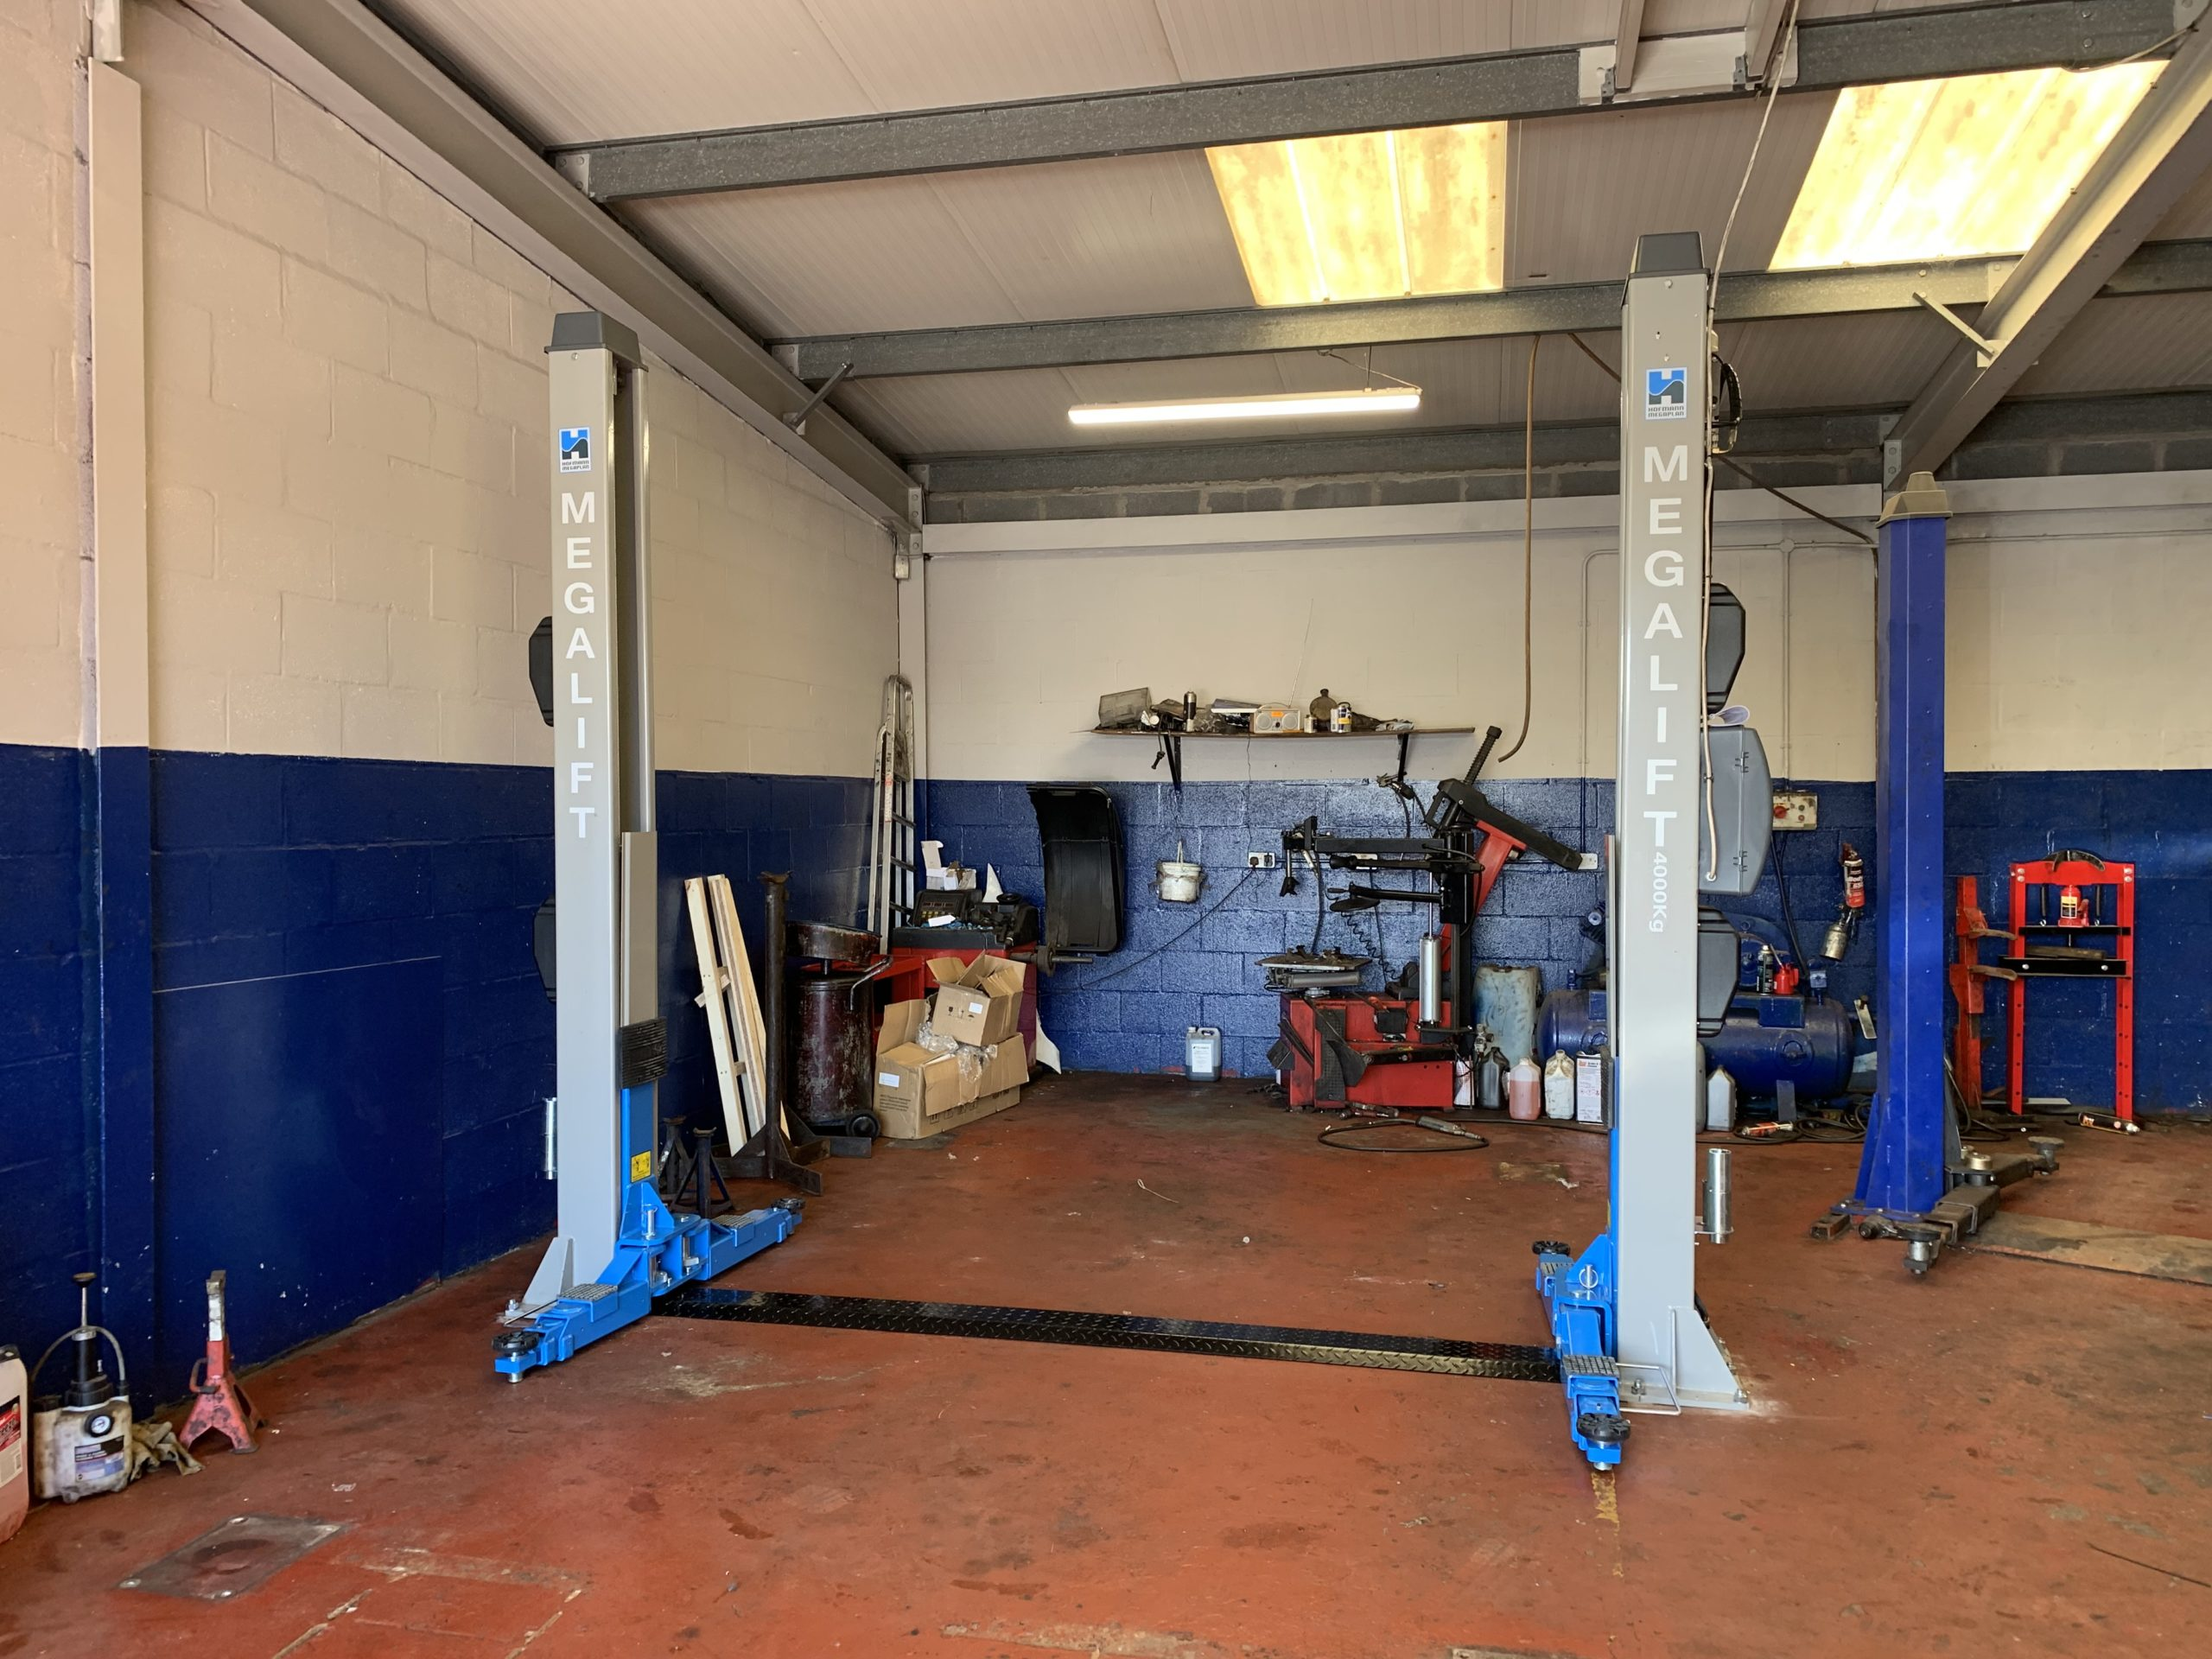 Replacing a four post lift, our installation team visited Steve Clenaghan Autos in Dundee to install a brand new Hofmann megalift 4000-3 Two Post Lift.